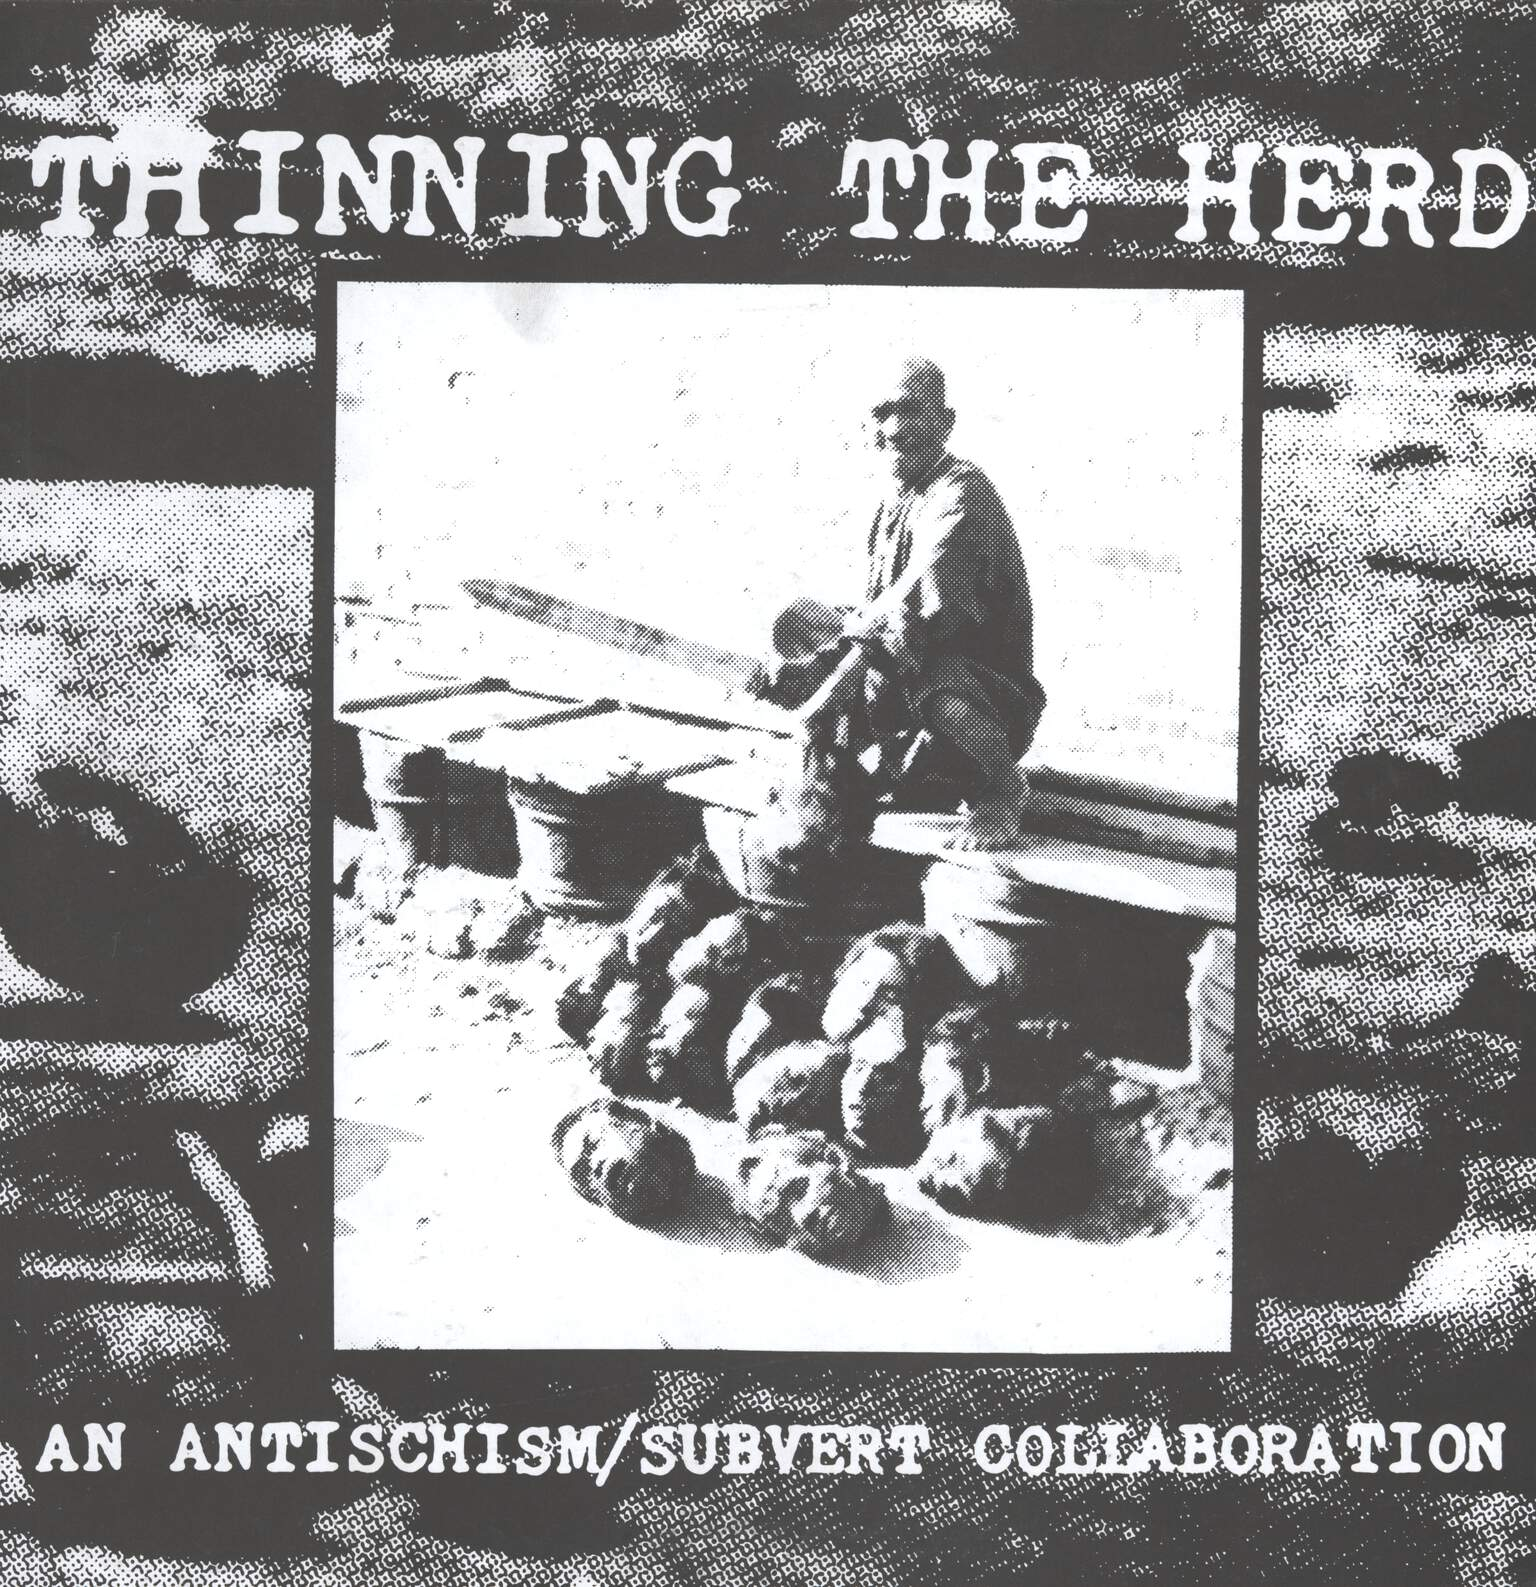 Antischism: Thinning The Herd, LP (Vinyl)